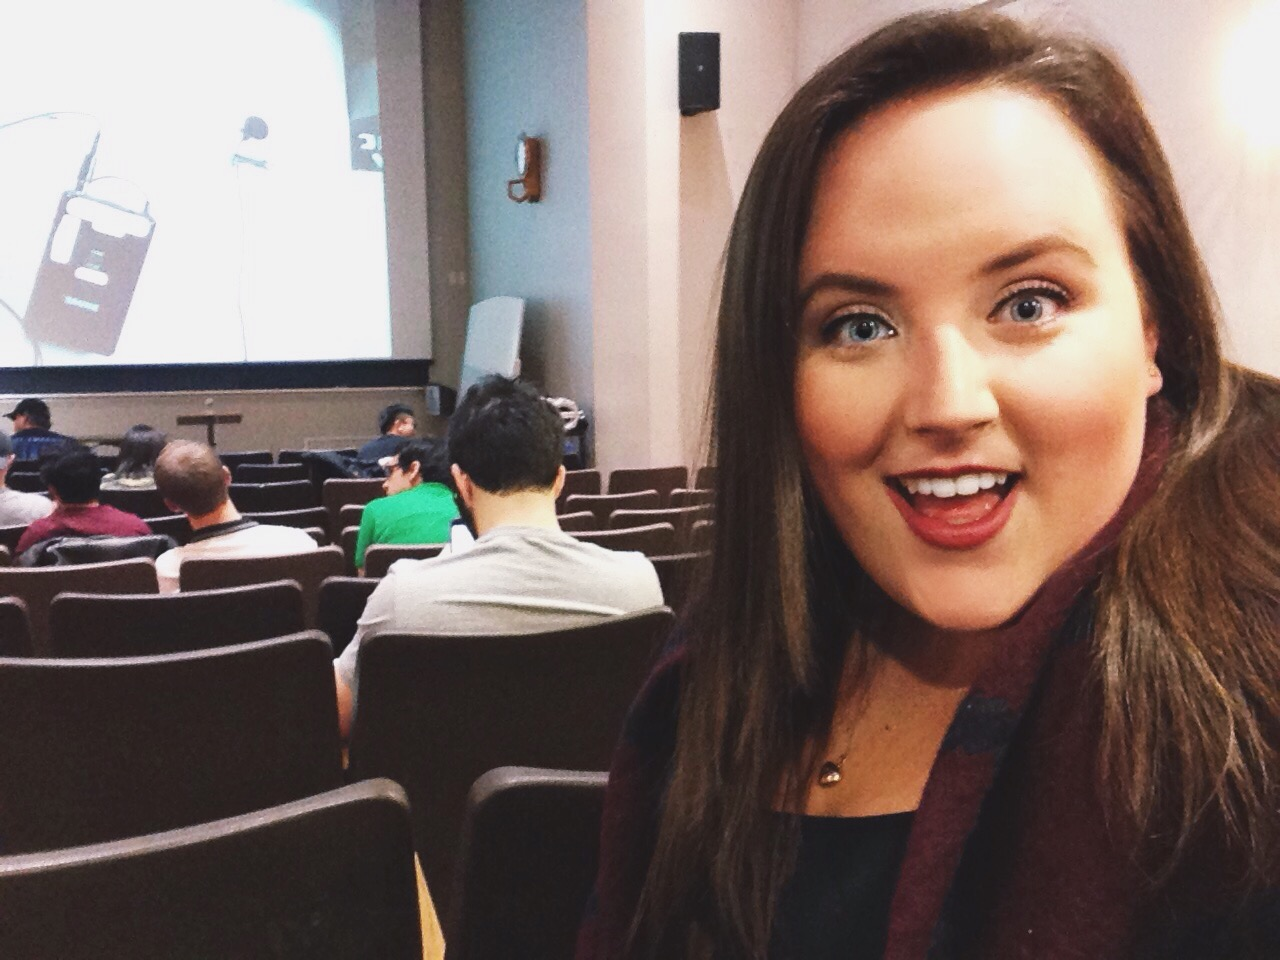 A selfie of me in the lecture hall, smiling at the lecture screen, acting goofy